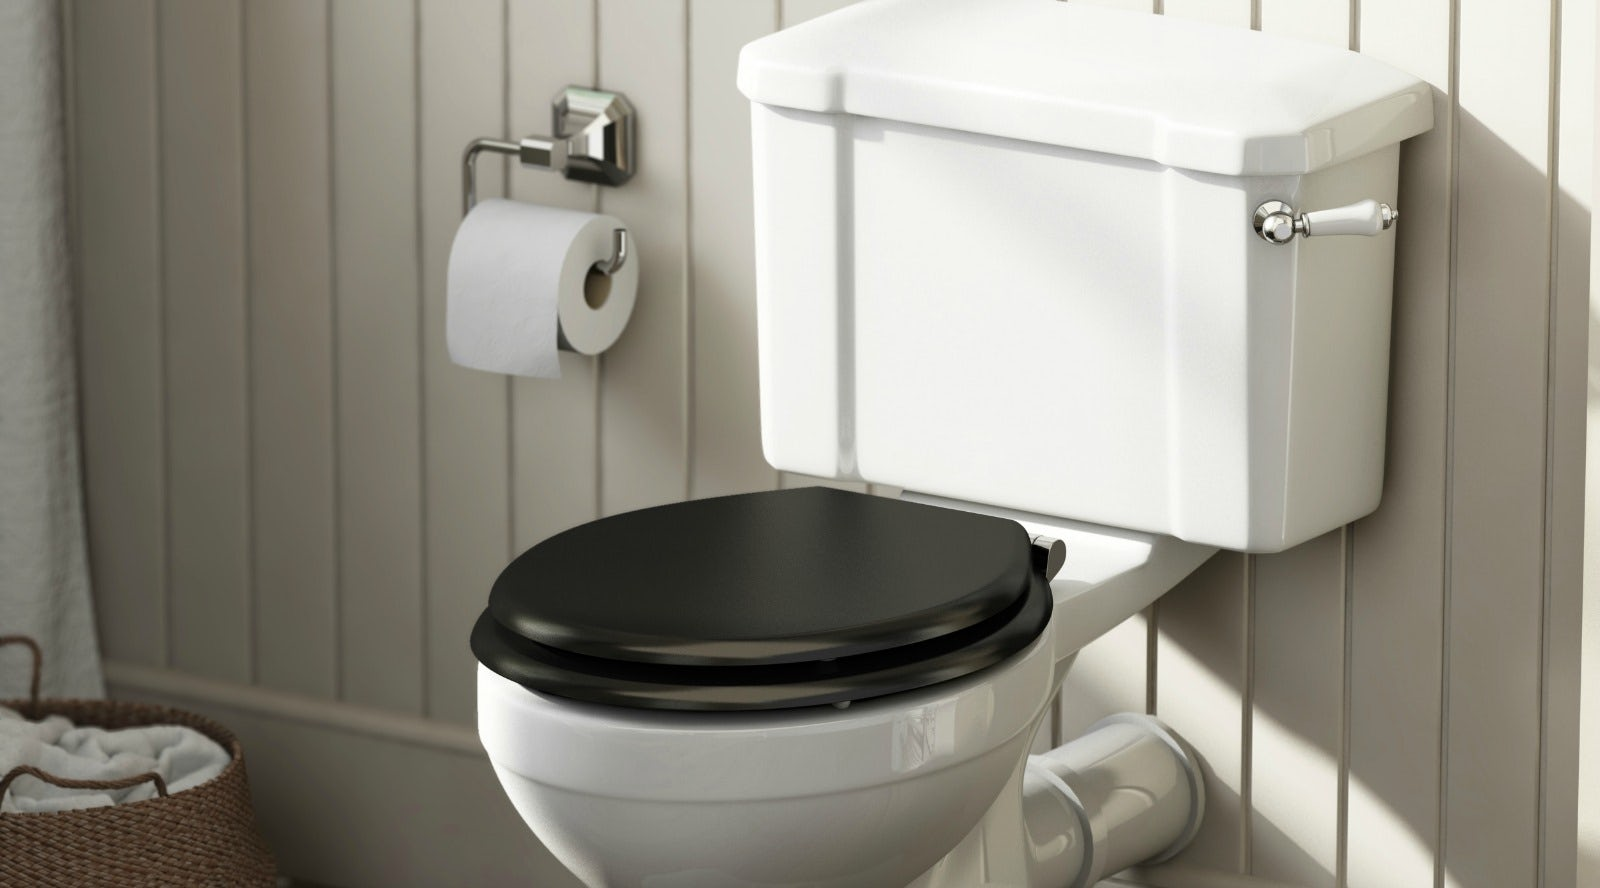 A brief history of bathrooms - From the tin bath to indoor loos